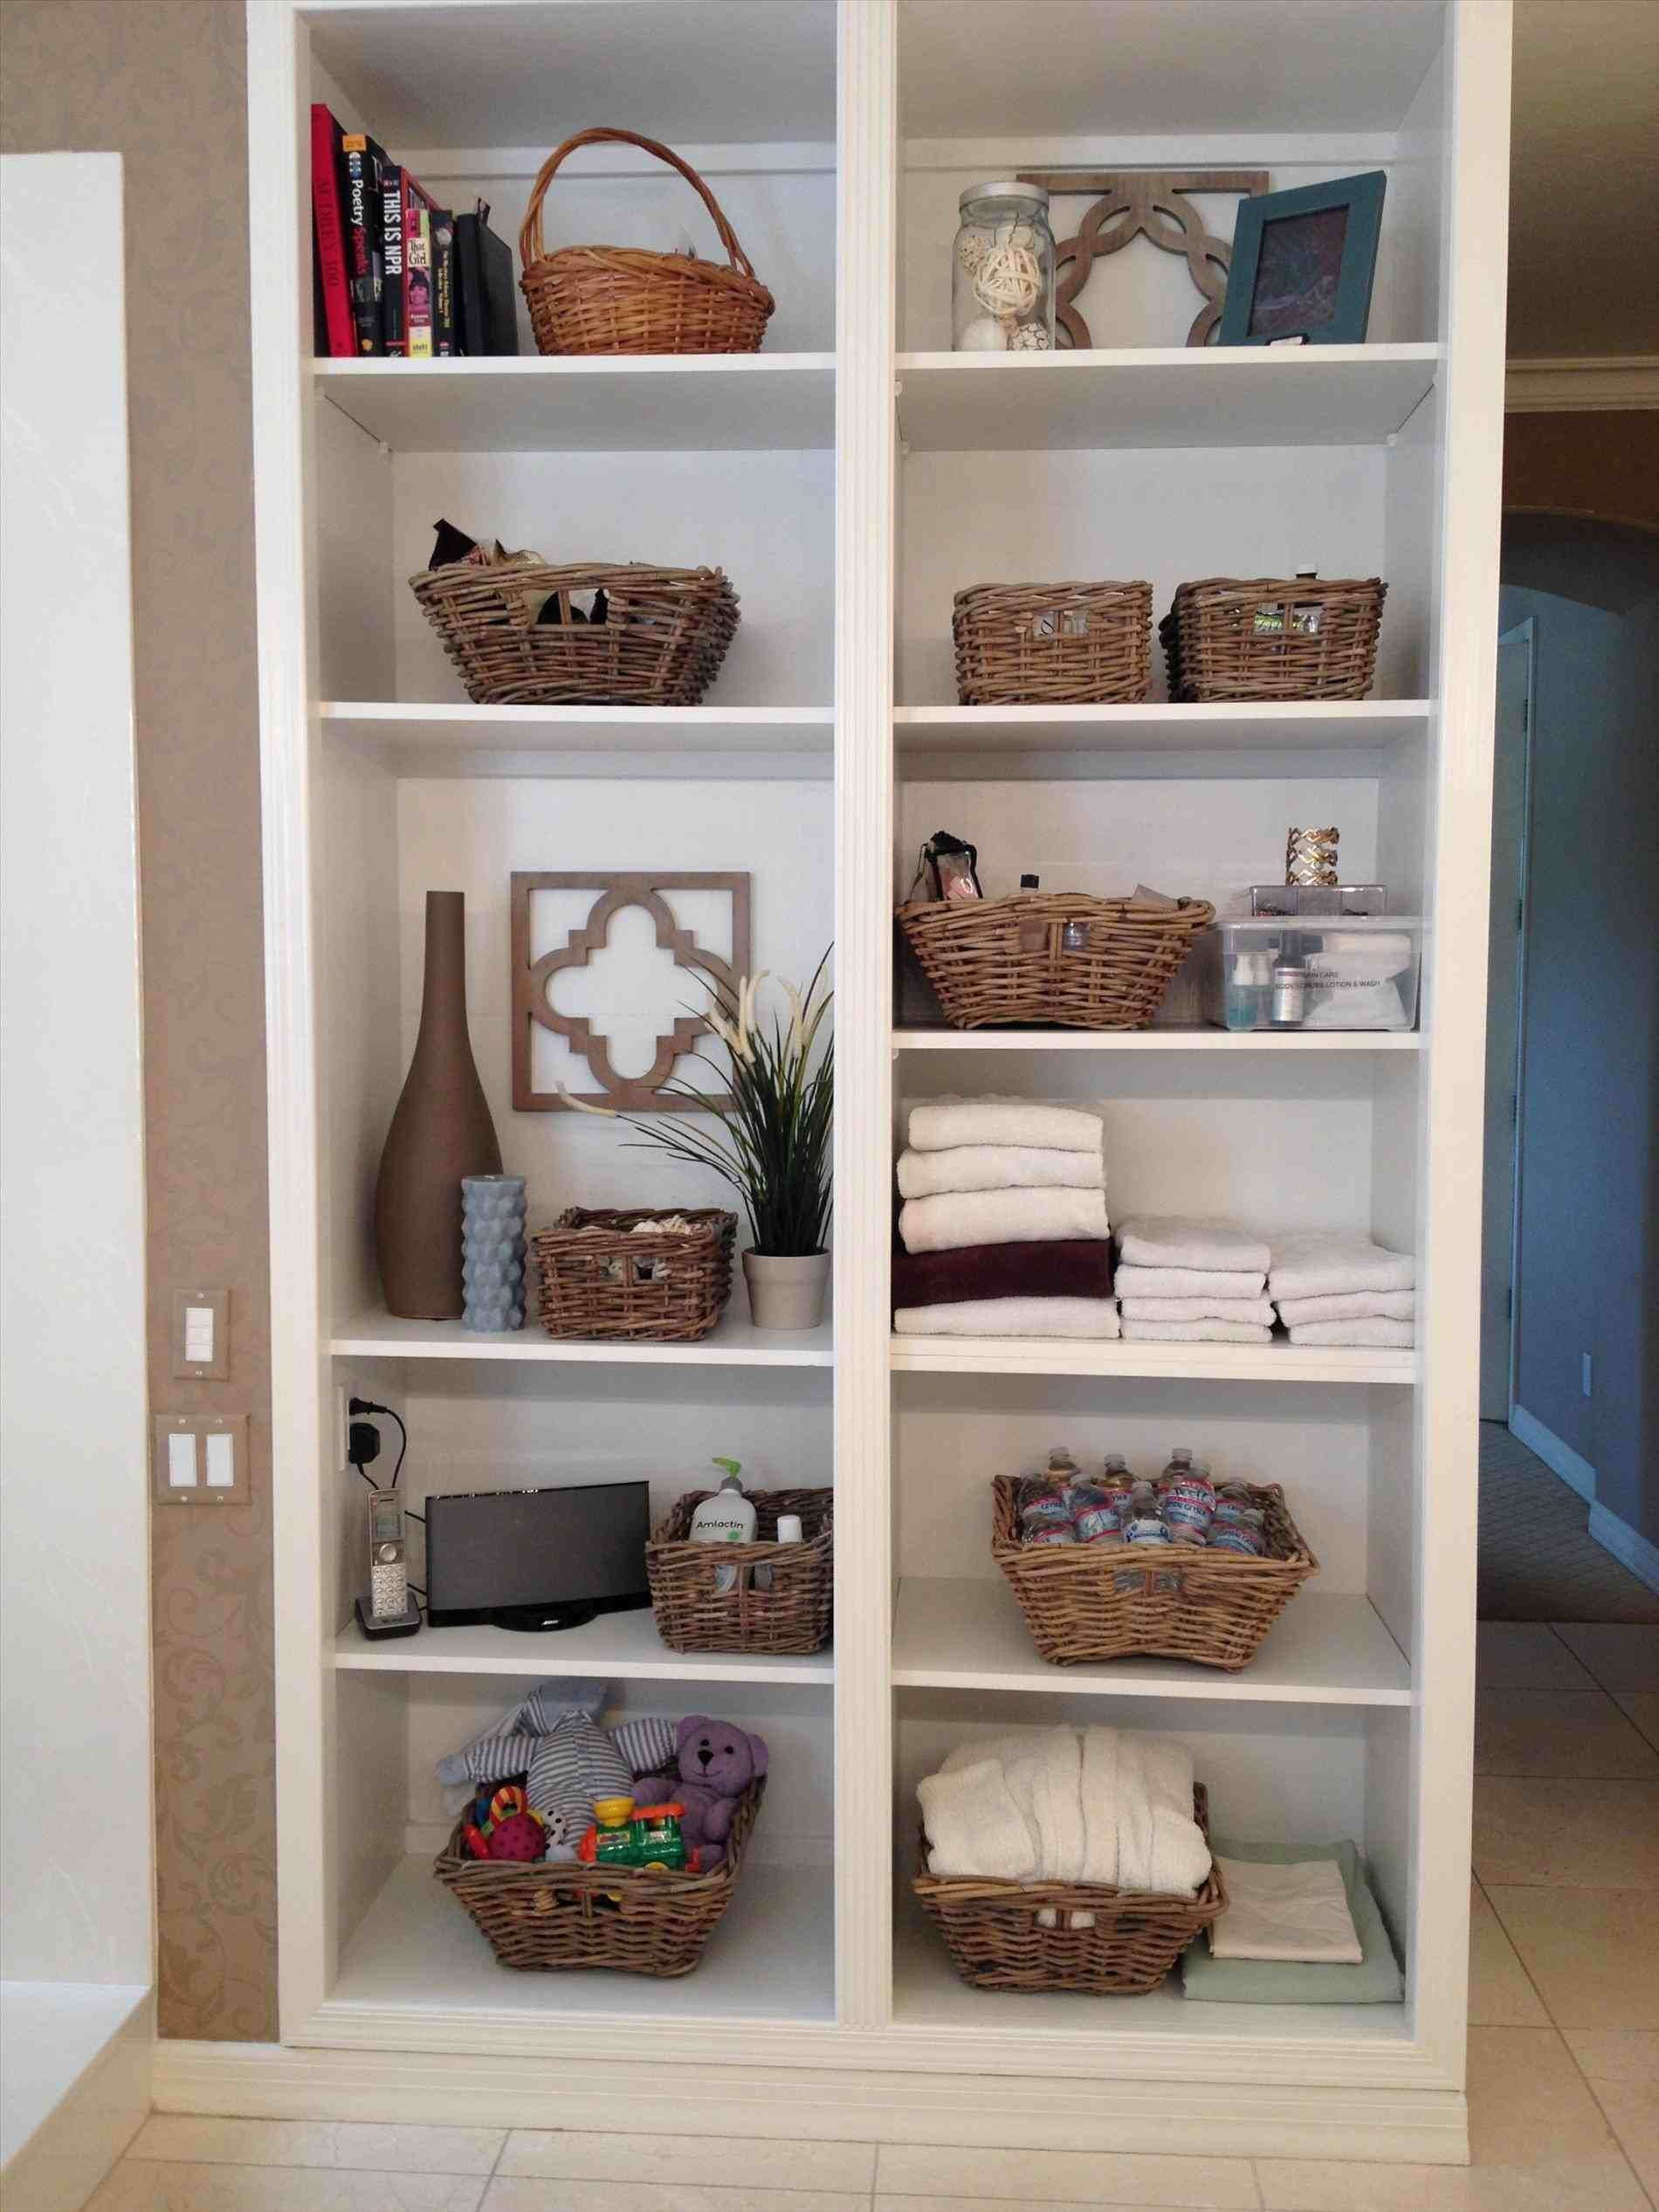 Beau New Post Bathroom Organizers Target